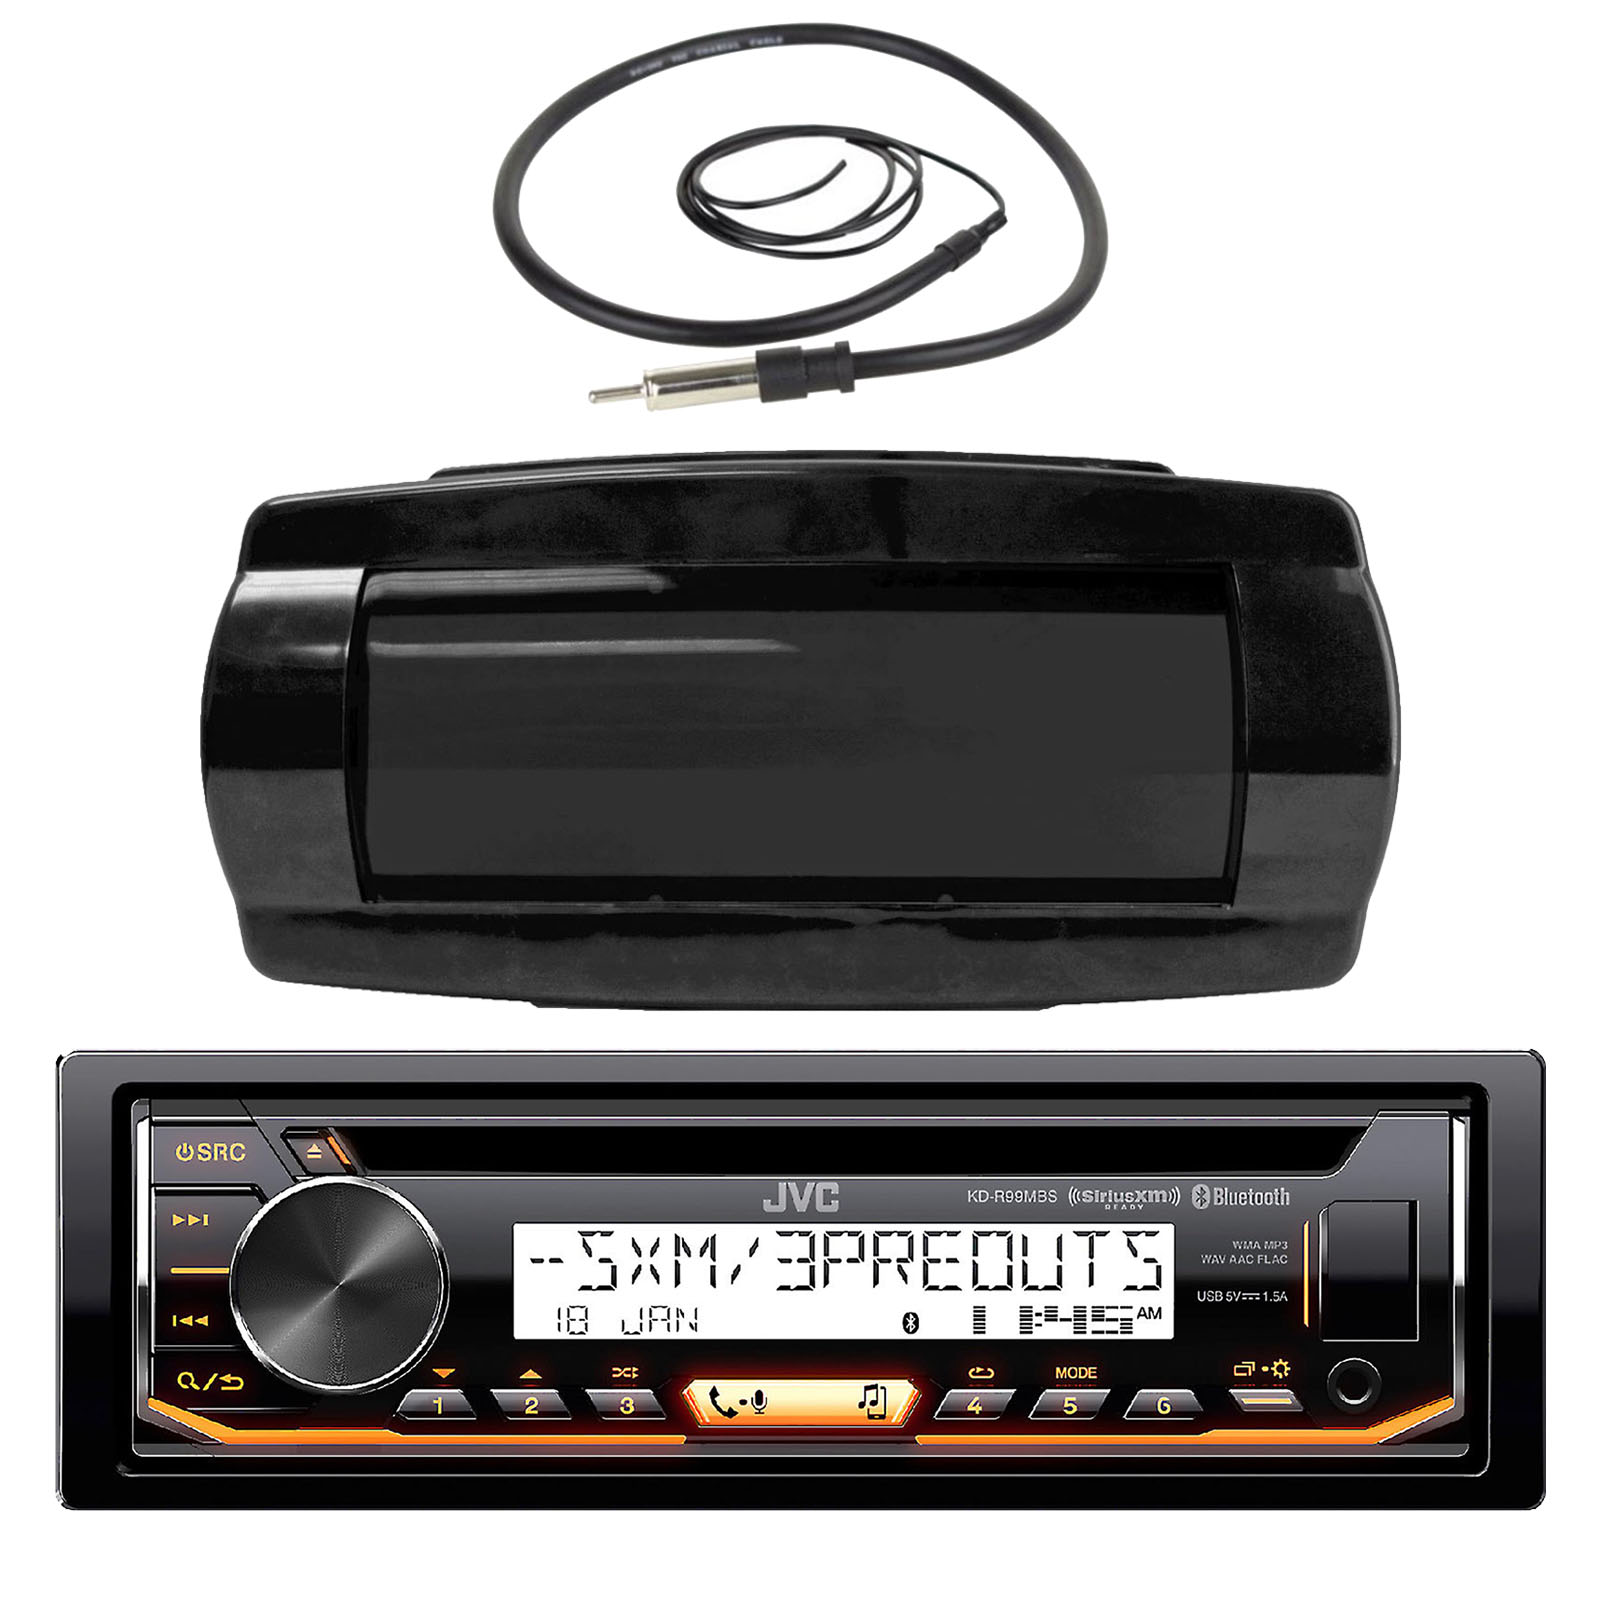 "JVC KD-R99MBS In-Dash Marine Boat Bluetooth Radio USB CD Receiver Bundle Combo With Jensen Marine RTR700 Black Water Resistant Housing + Enrock EKMR1 Water Resistant 22"" Inch Radio Antenna"